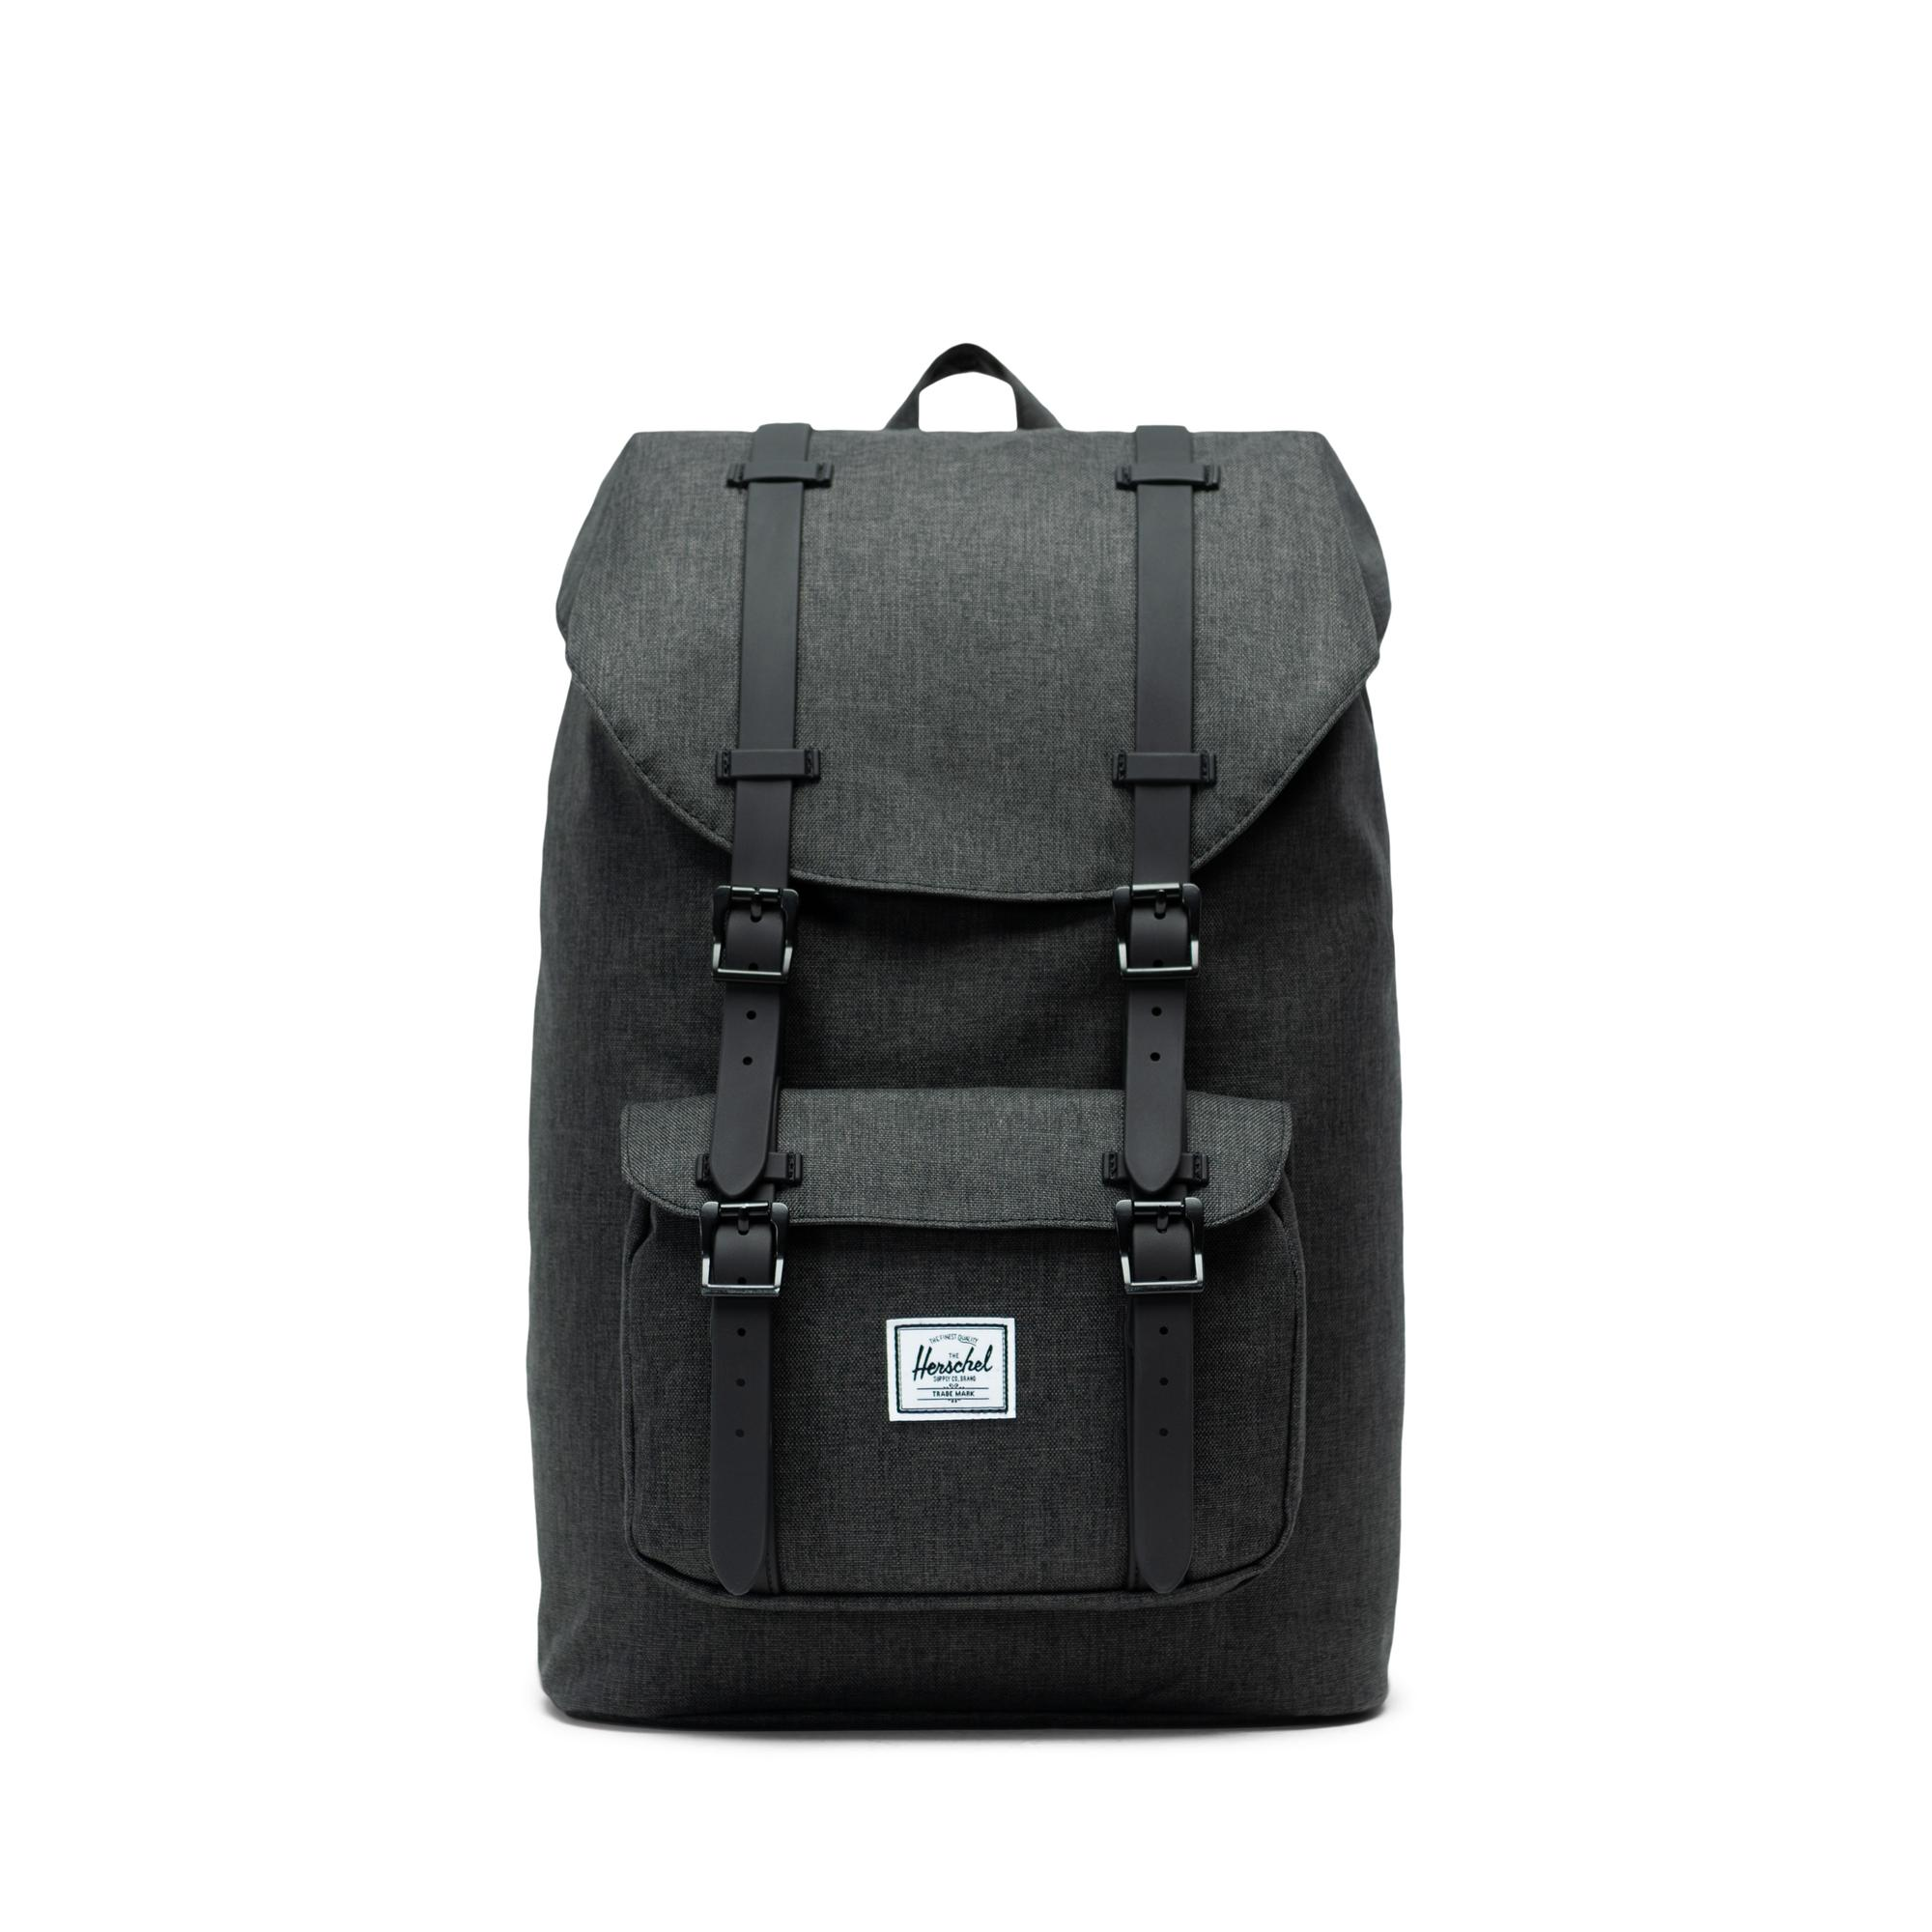 7d2eeb35bd08 Herschel Little America Backpack Mid-Volume